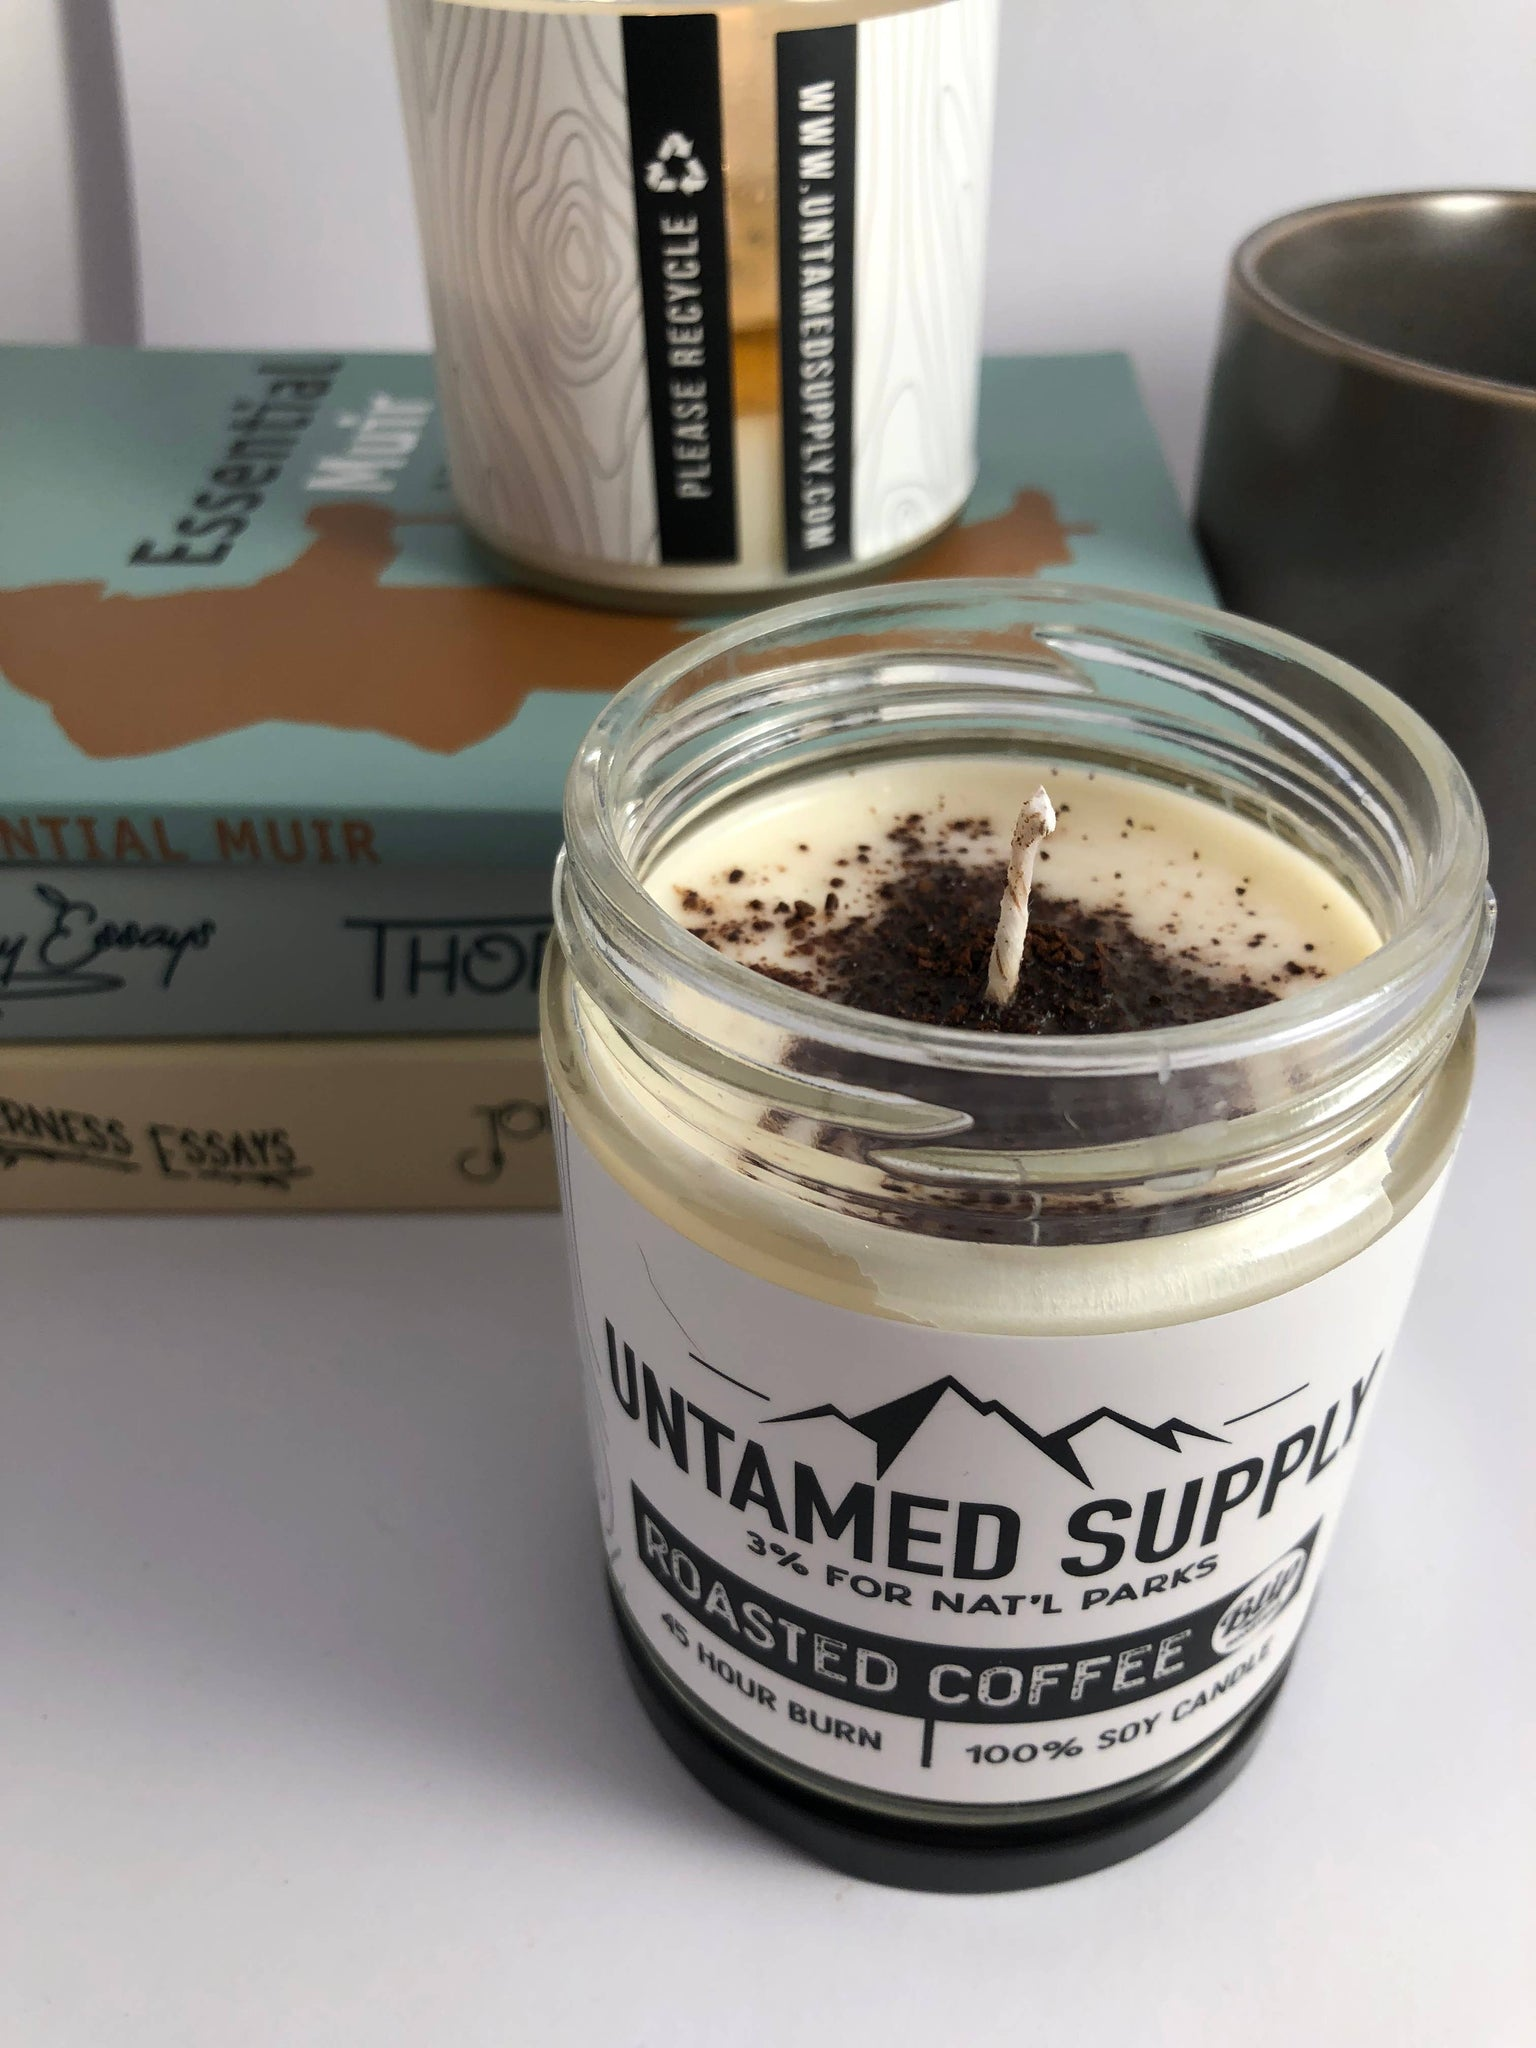 Roasted Coffee Candle